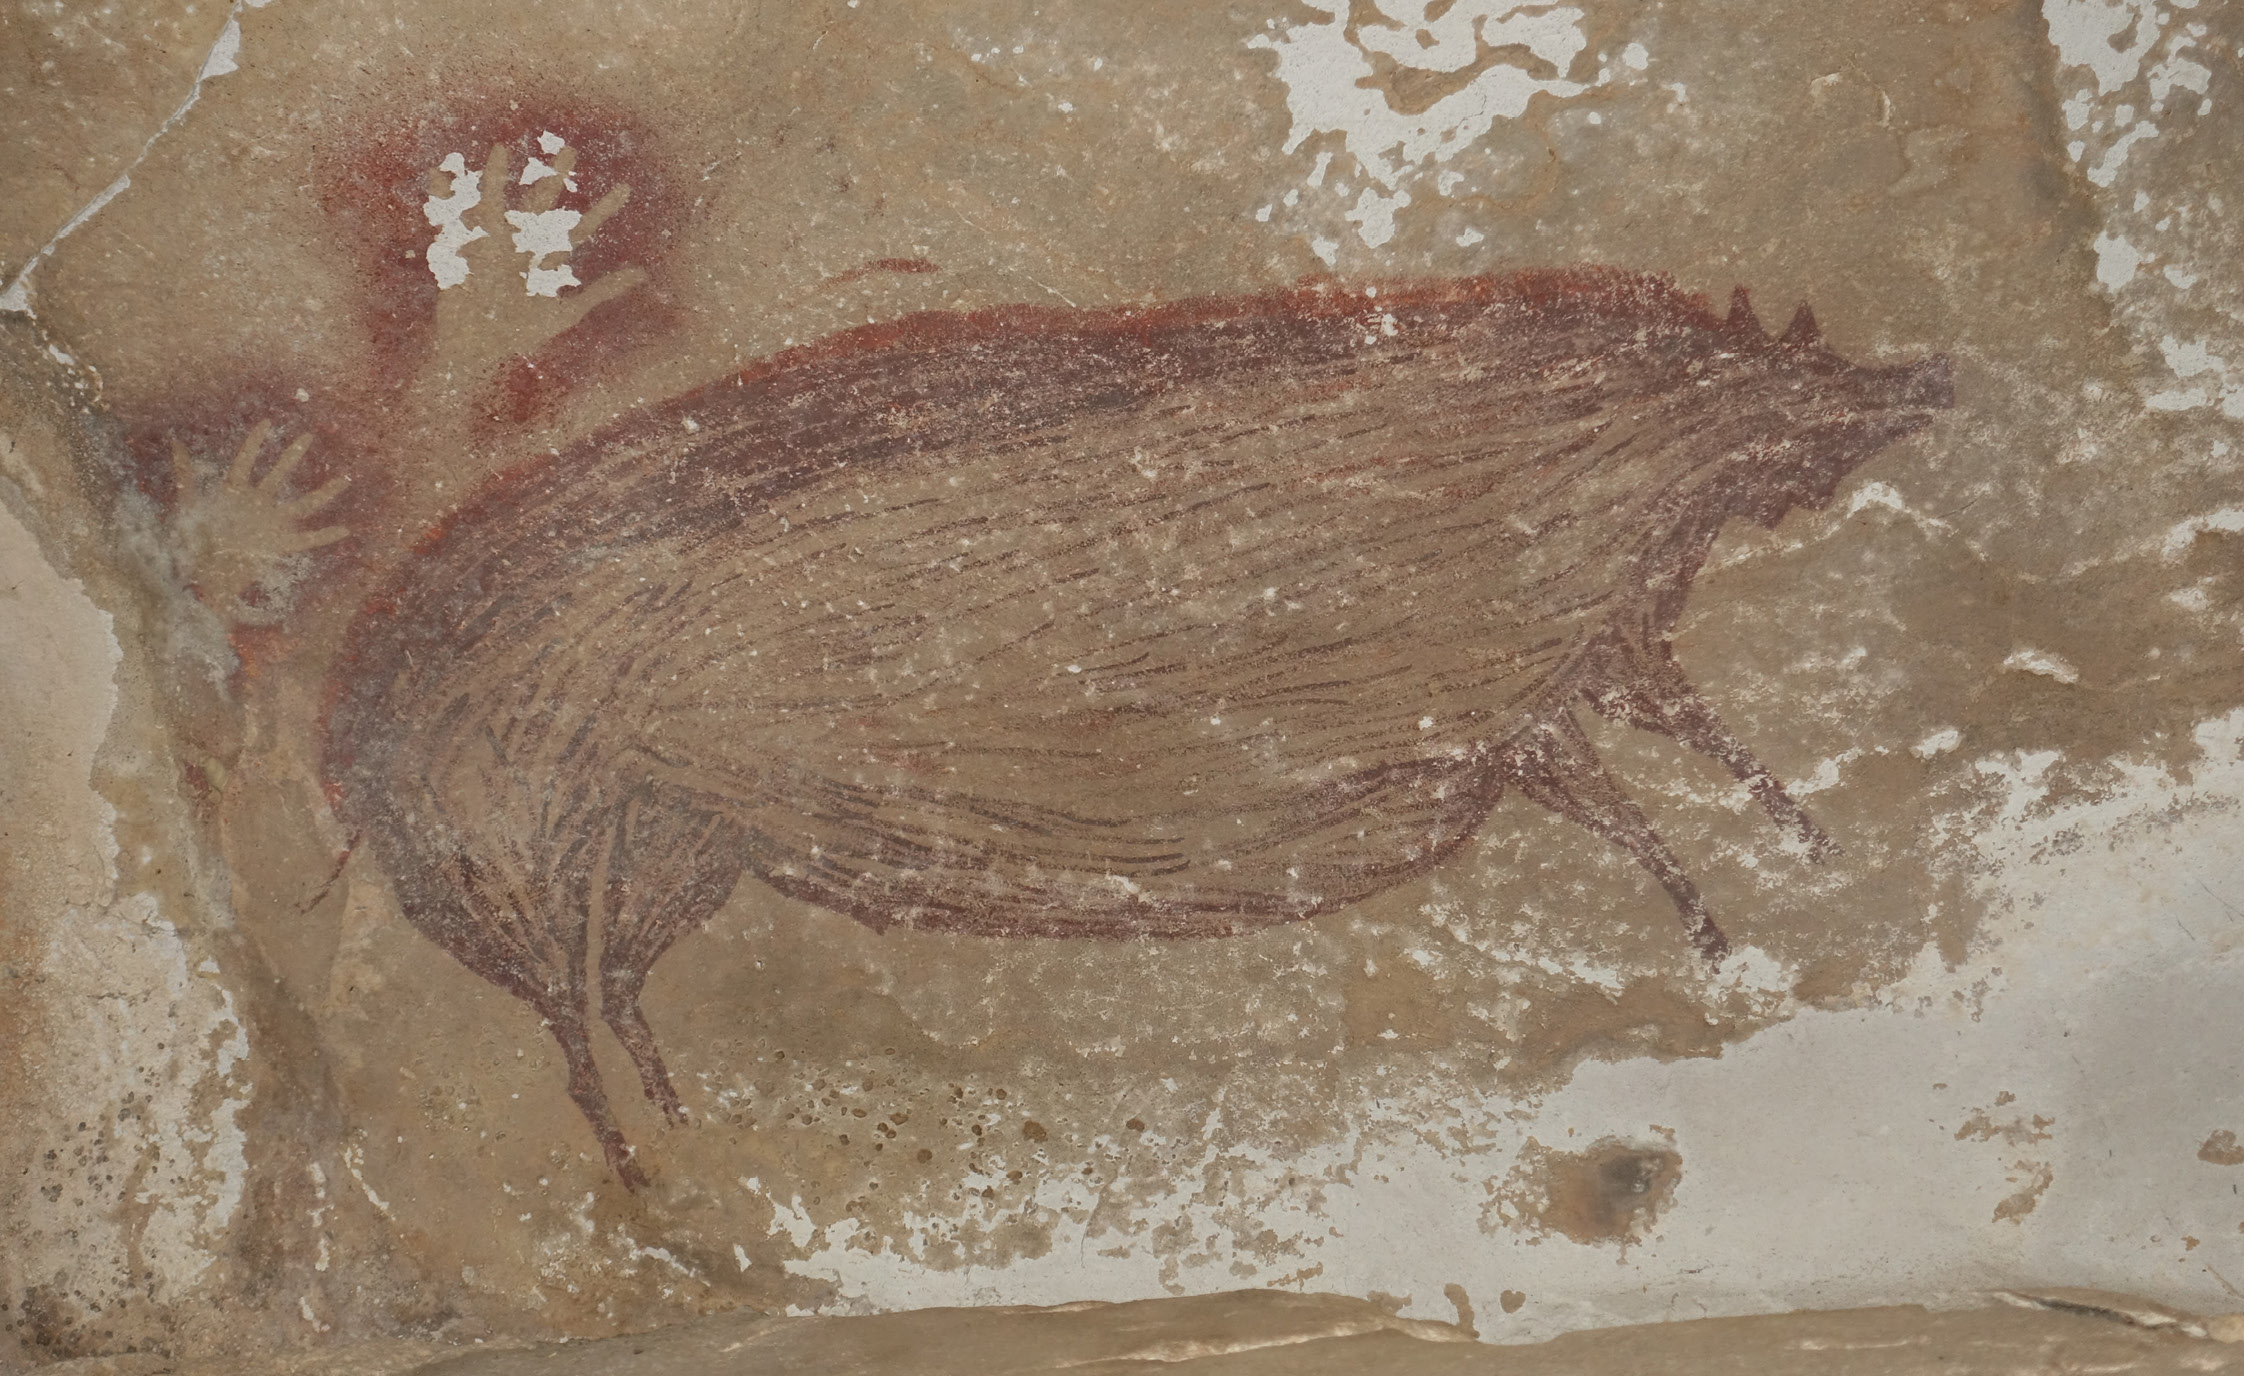 Indonesia's oldest cave art discovered